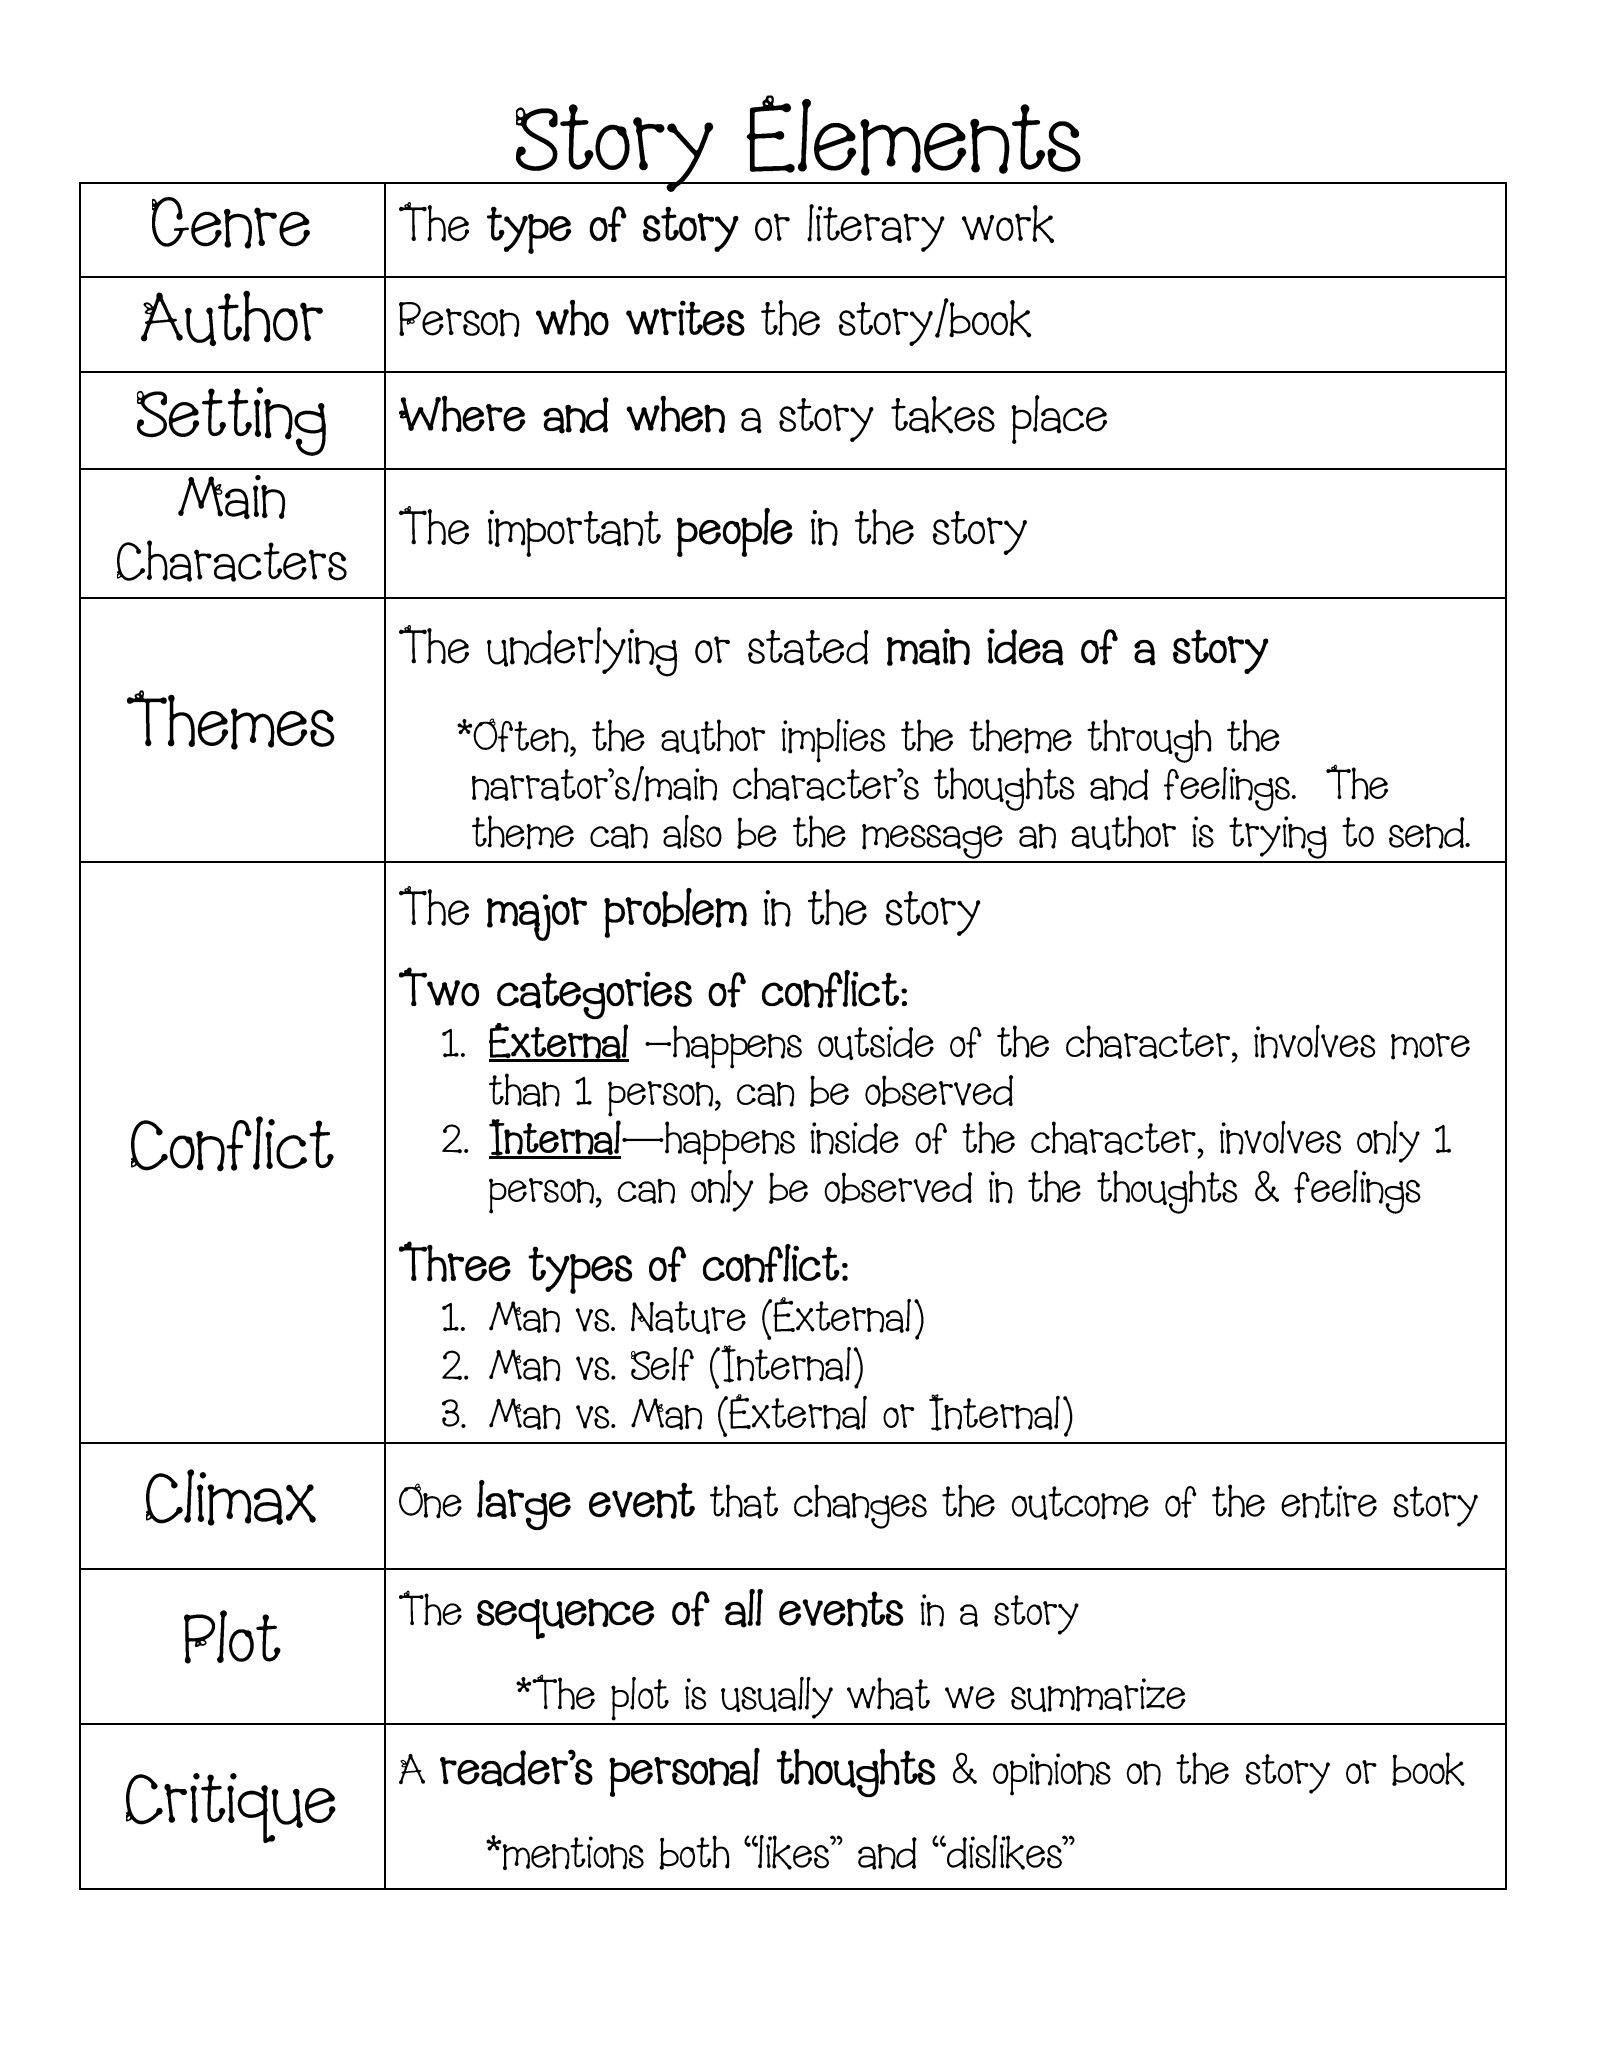 A Nice Simple Story Elements Chart For Refreshing